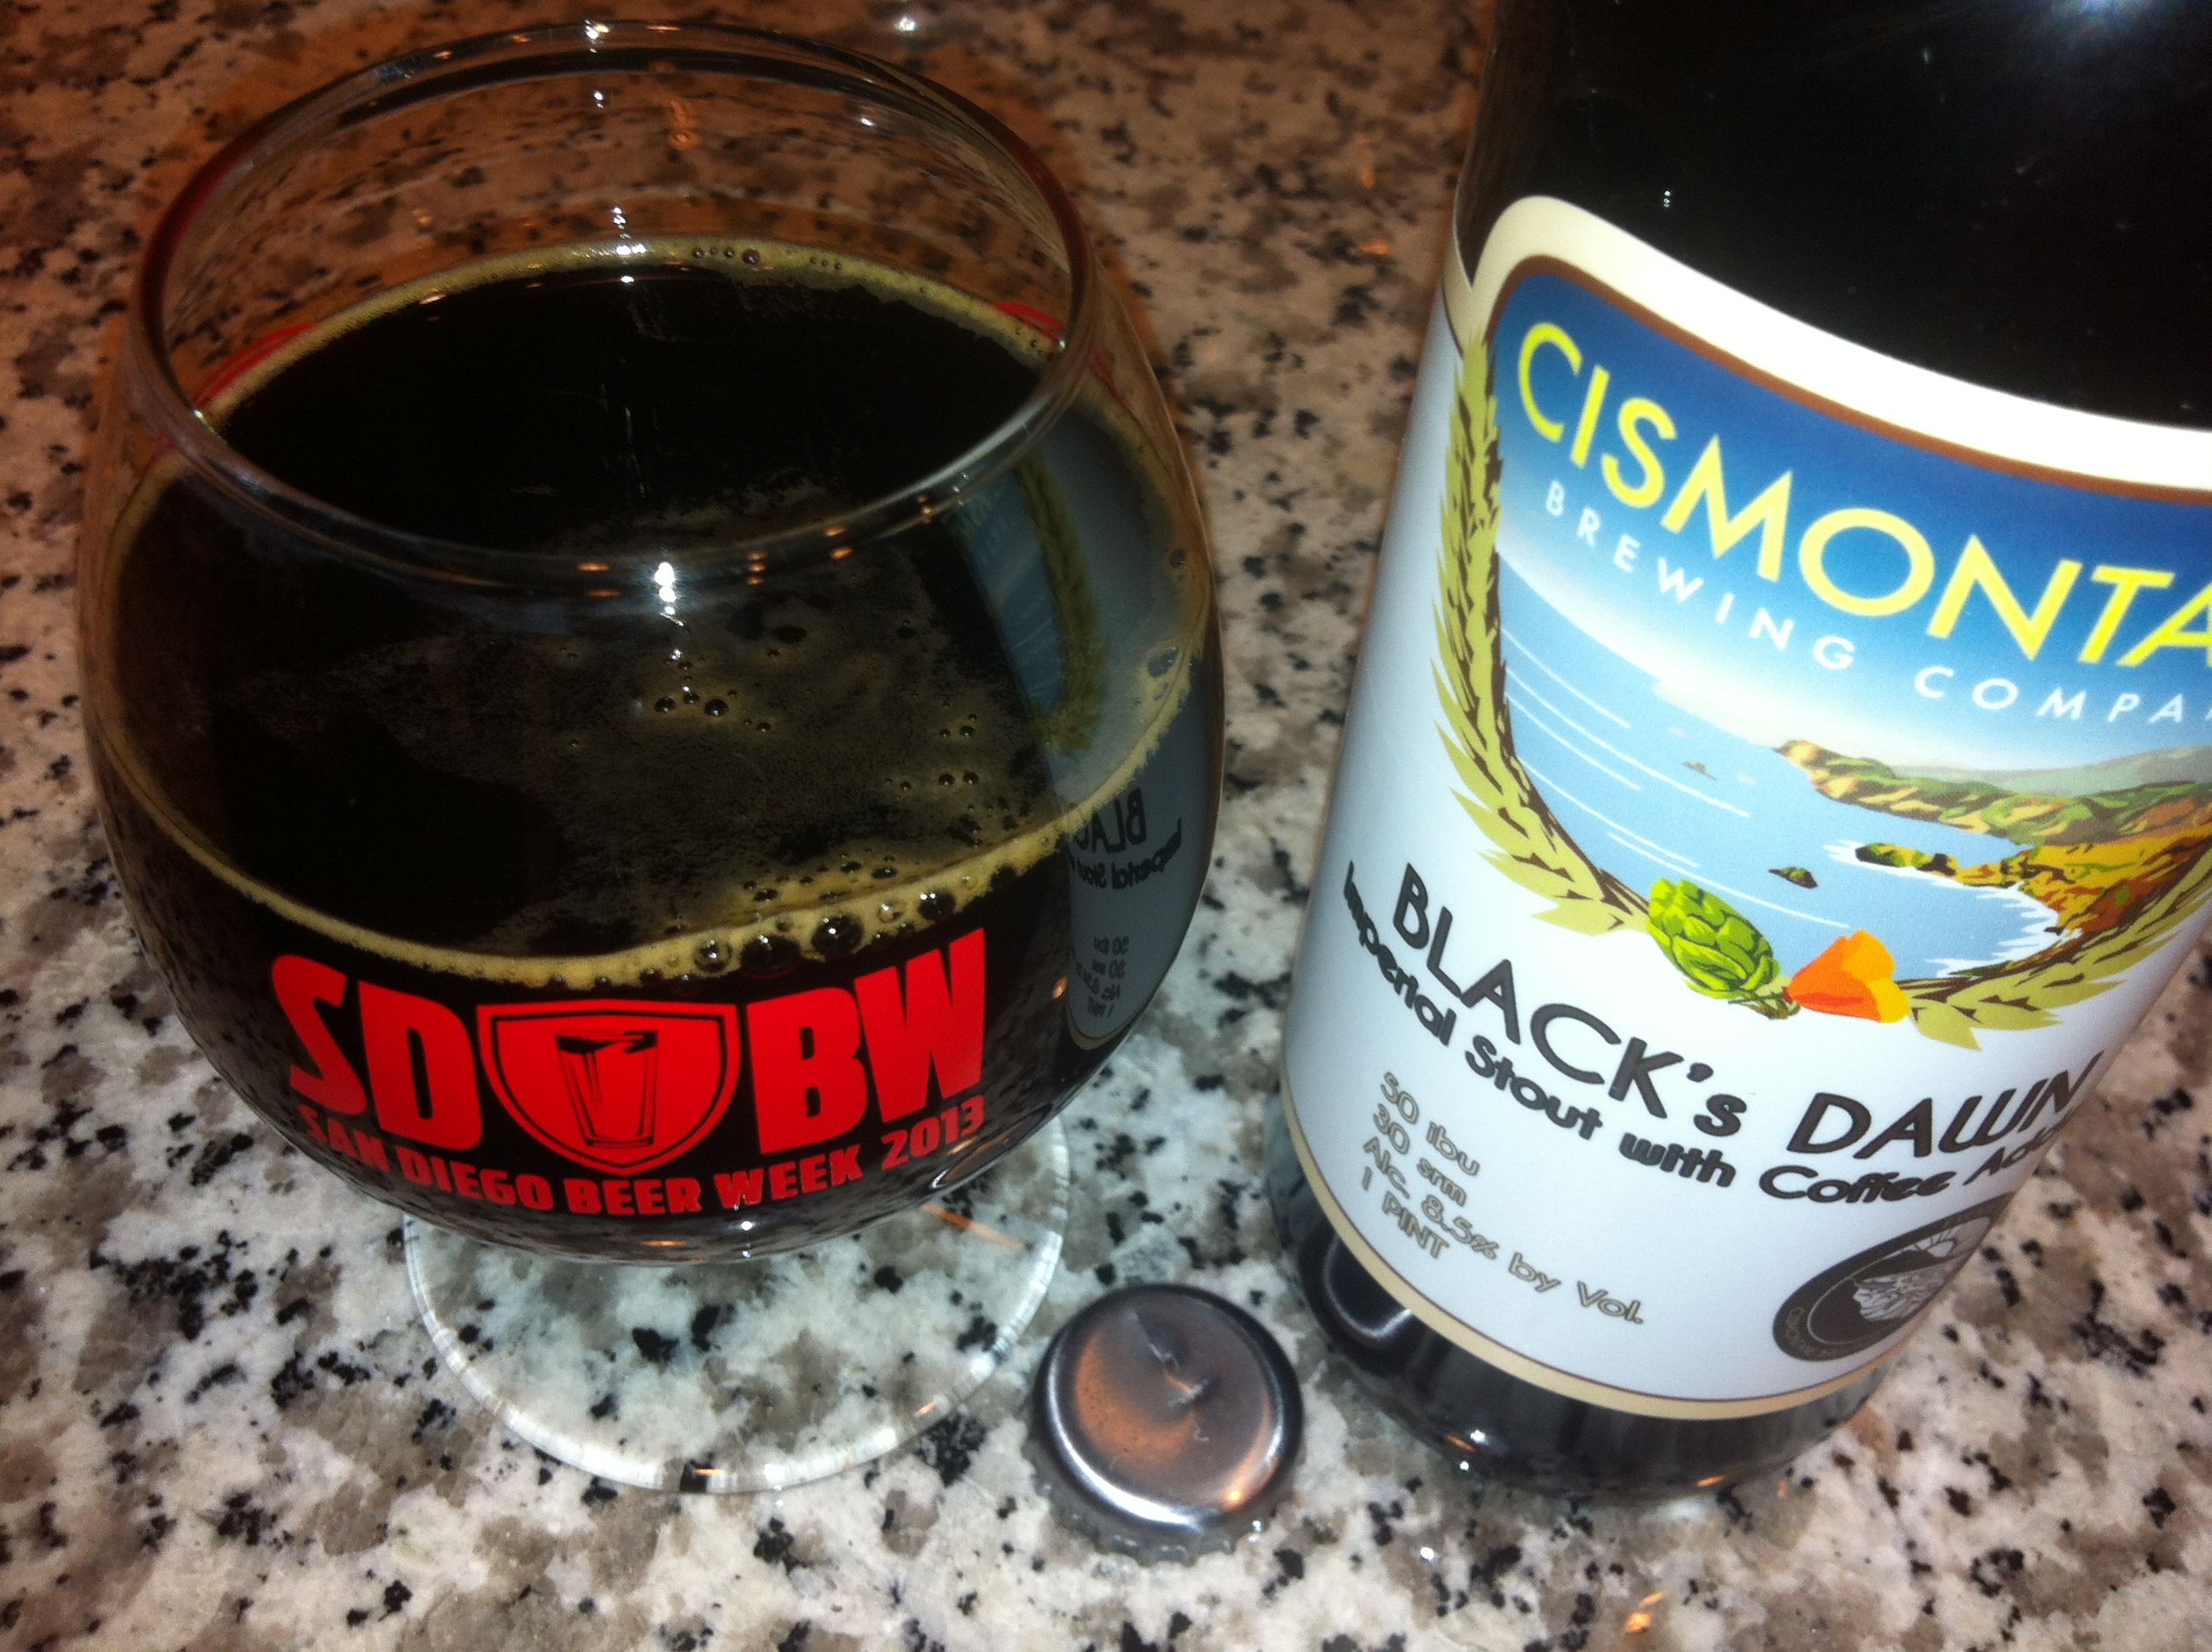 International Stout Day 2013 enjoyed with Cismontaine Black's Dawn